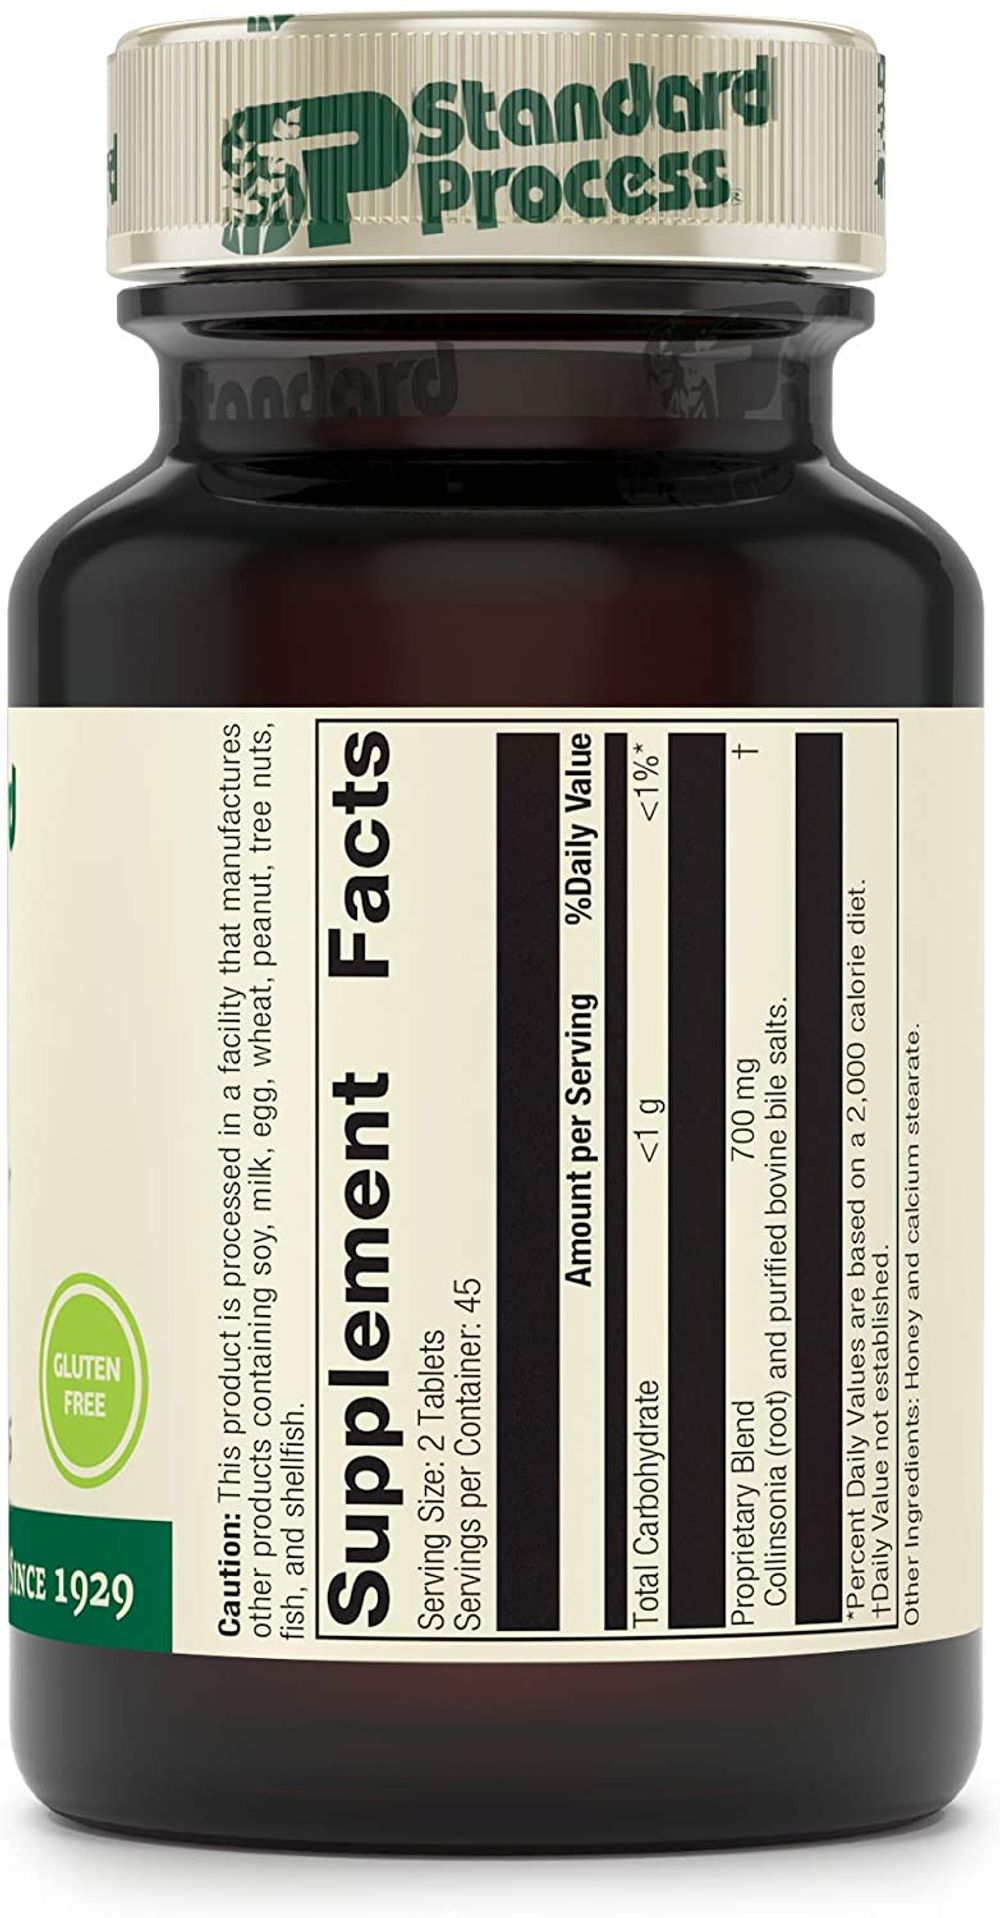 Standard Process Cholacol - Fat Digestion Enzymes and Gallbladder Support with Honey, Bile Salts, Collinsonia Root - 90 Tablets